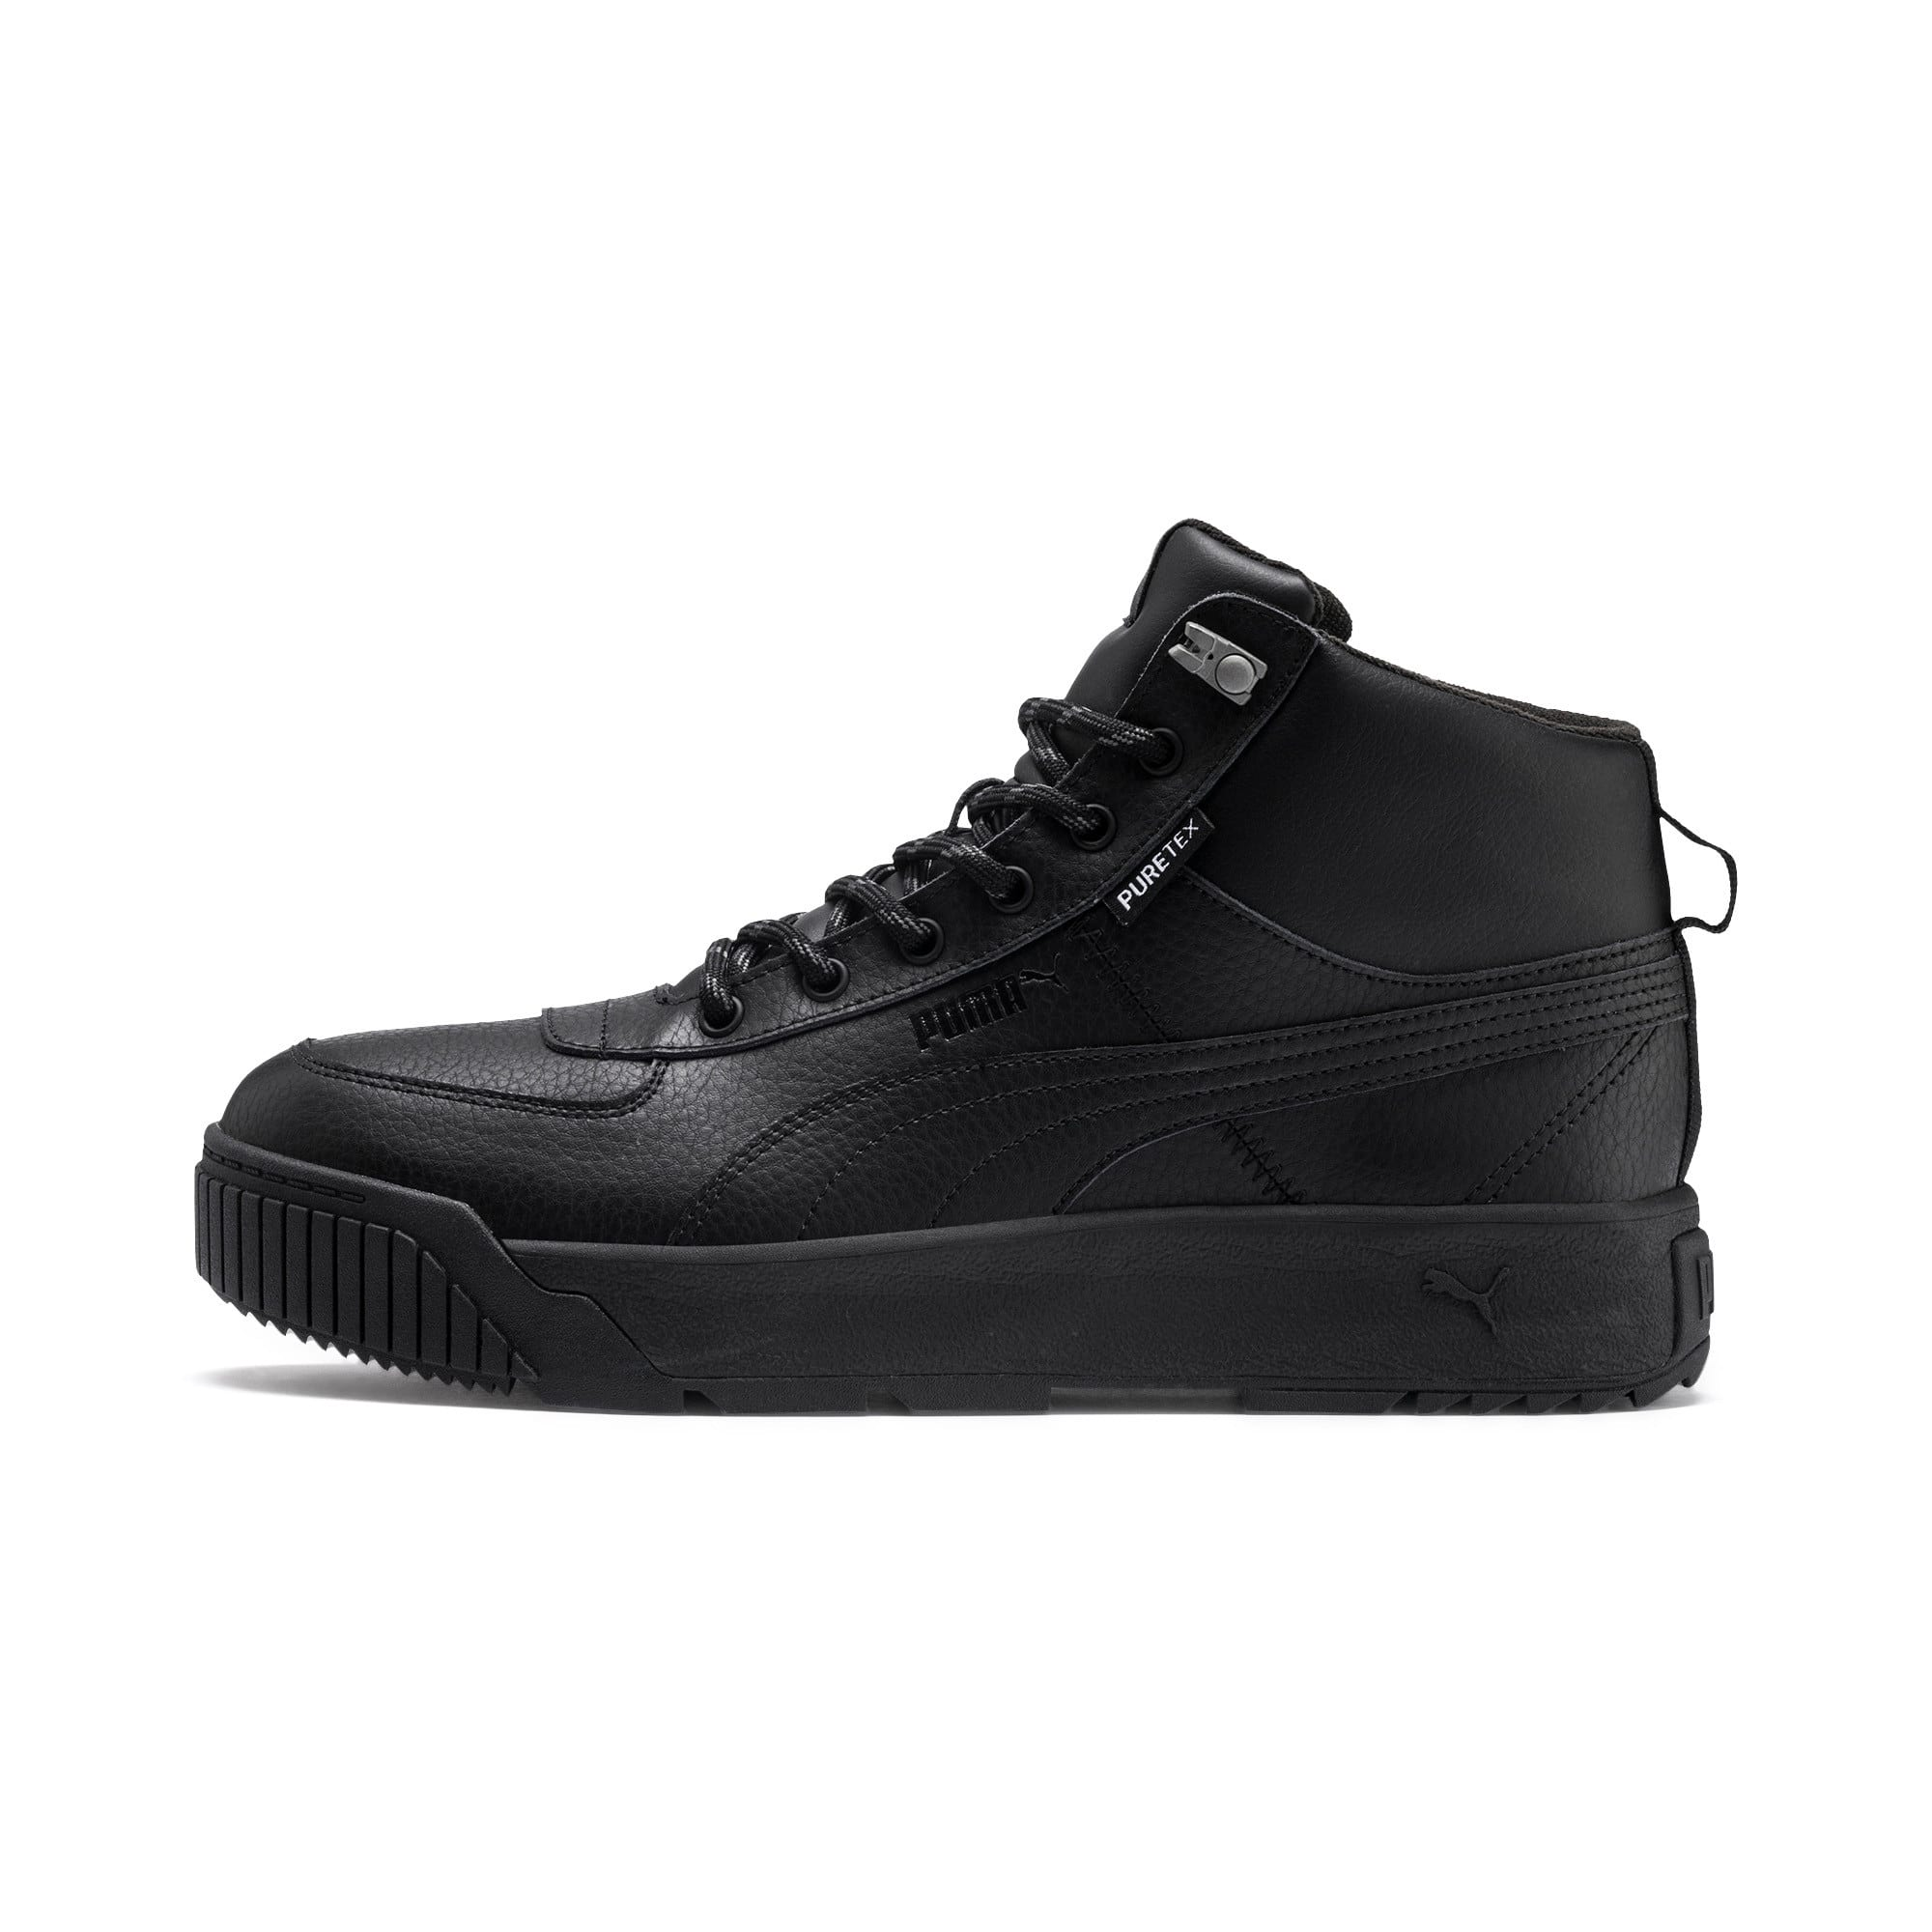 Thumbnail 1 of Tarrenz SB PURE-TEX Trainers, Puma Black-Puma Black, medium